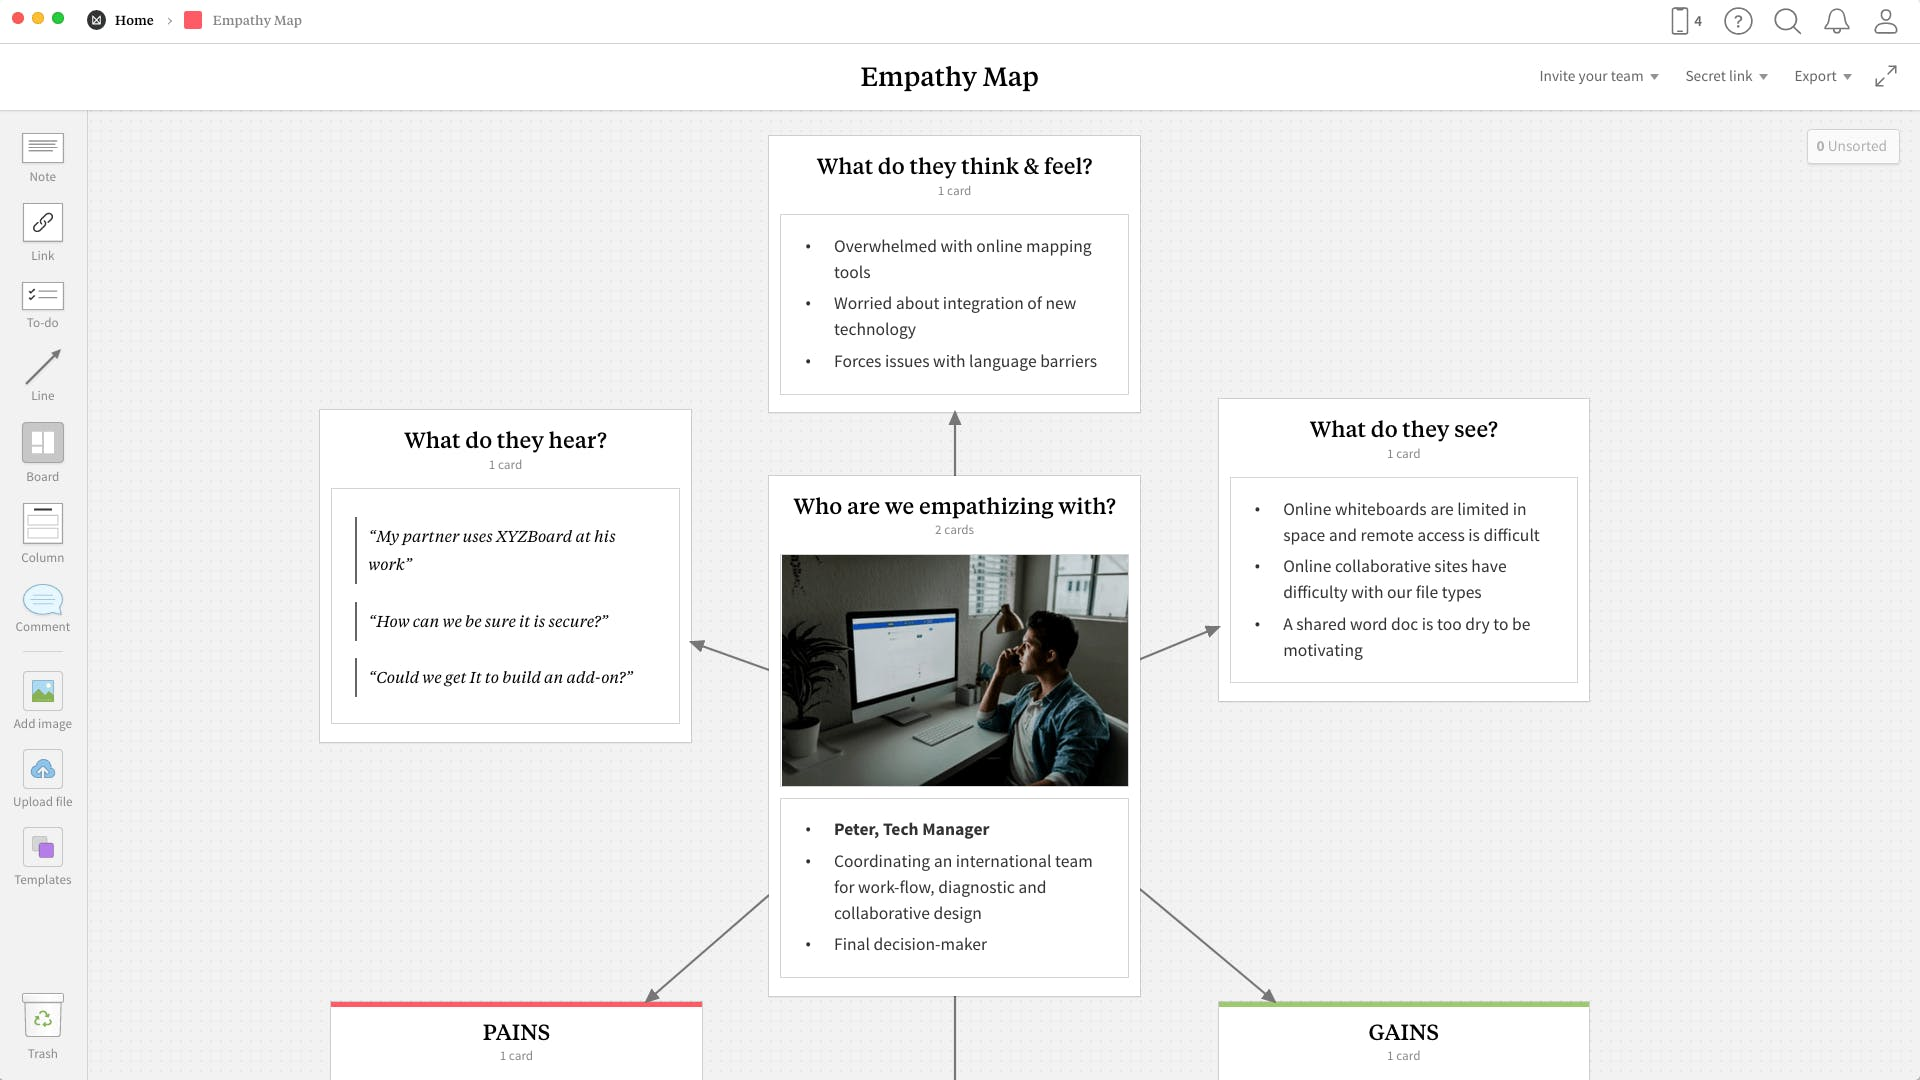 Completed Empathy Map template in Milanote app